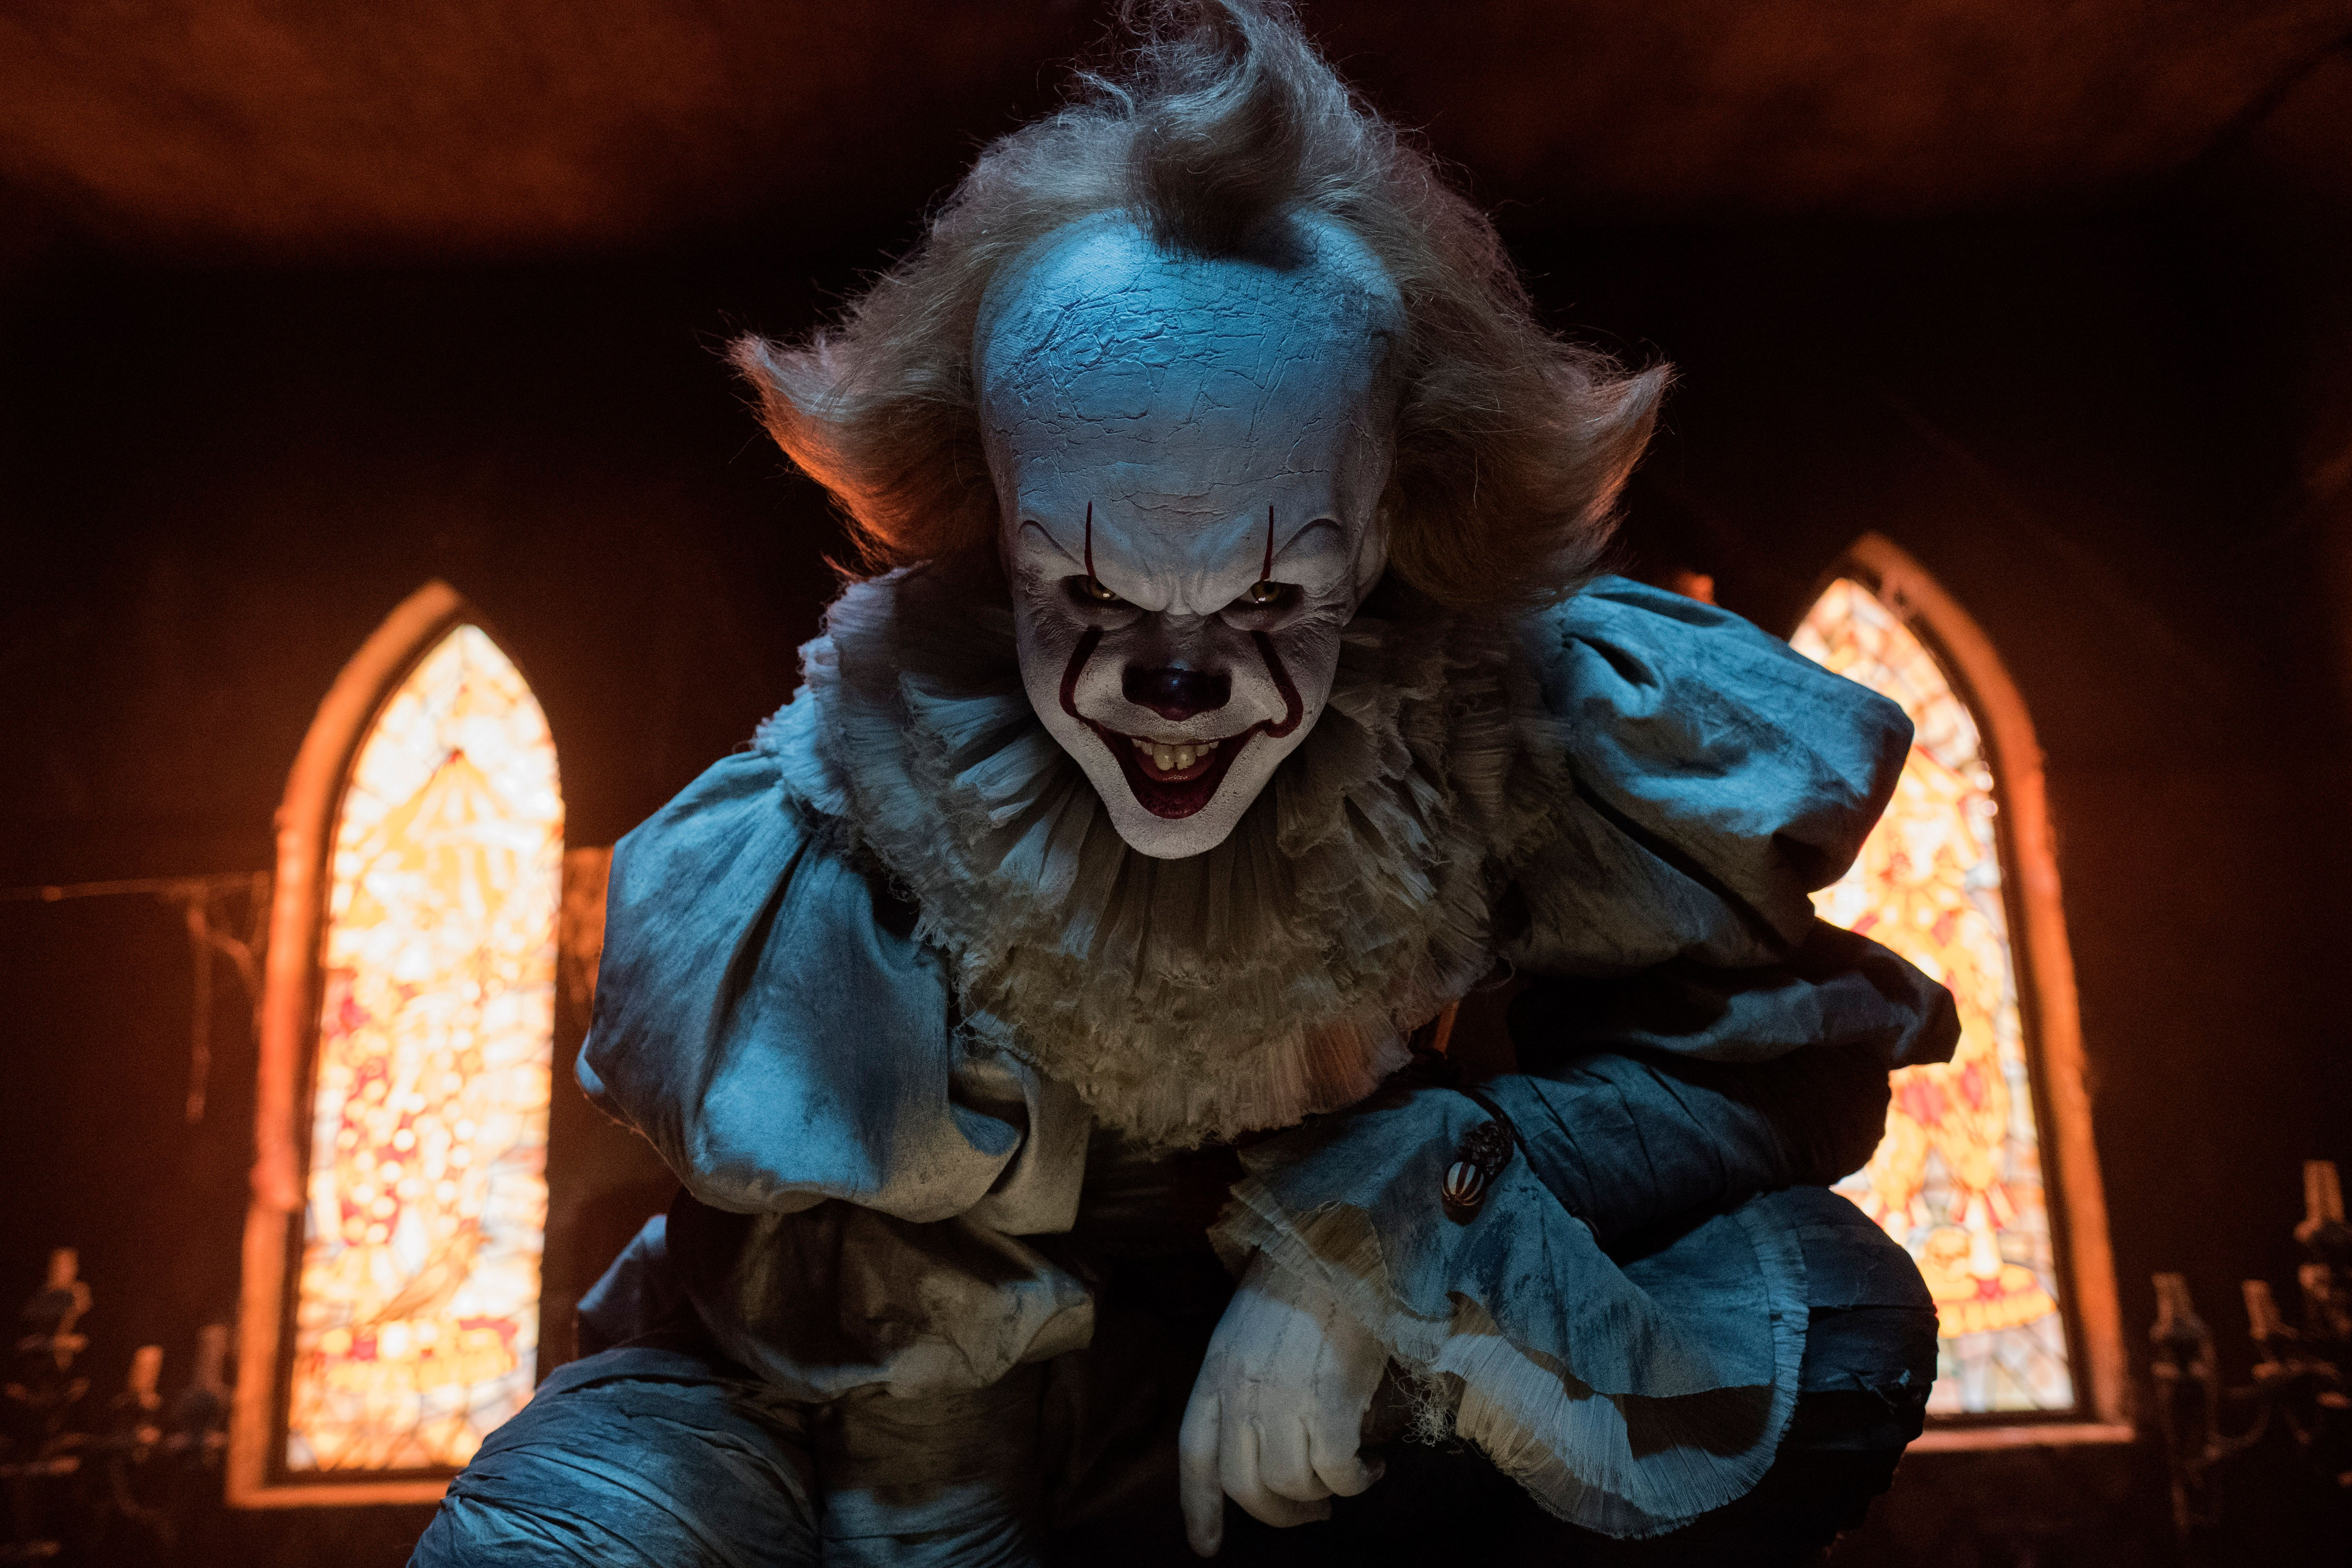 IT Movie Ending Explained: What's Next for Pennywise? | Collider